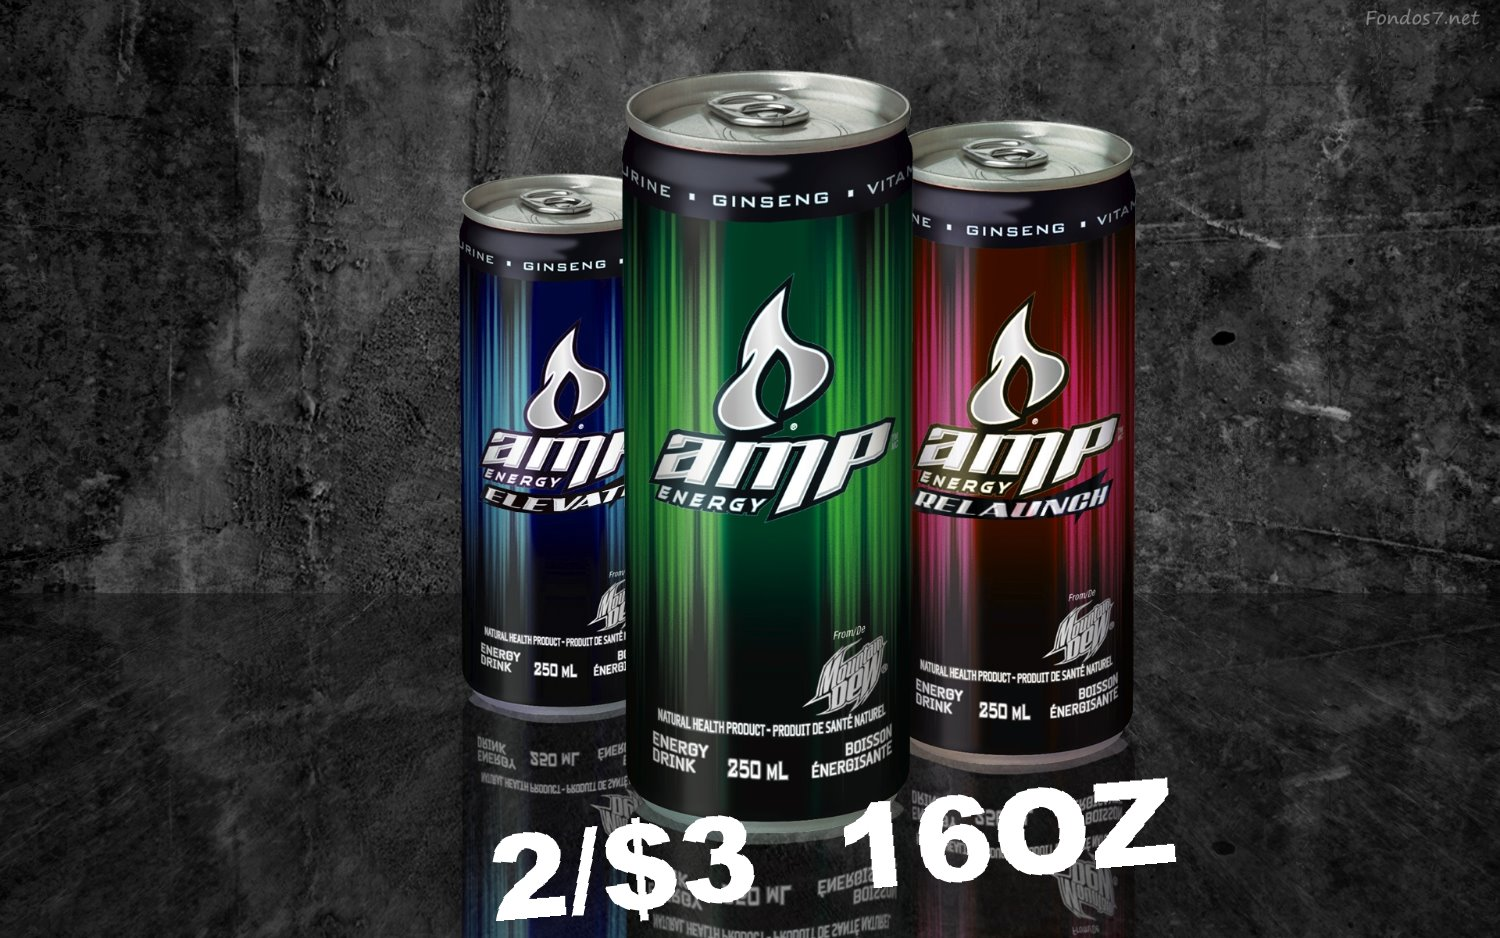 amp-energy-drink-2326_edited